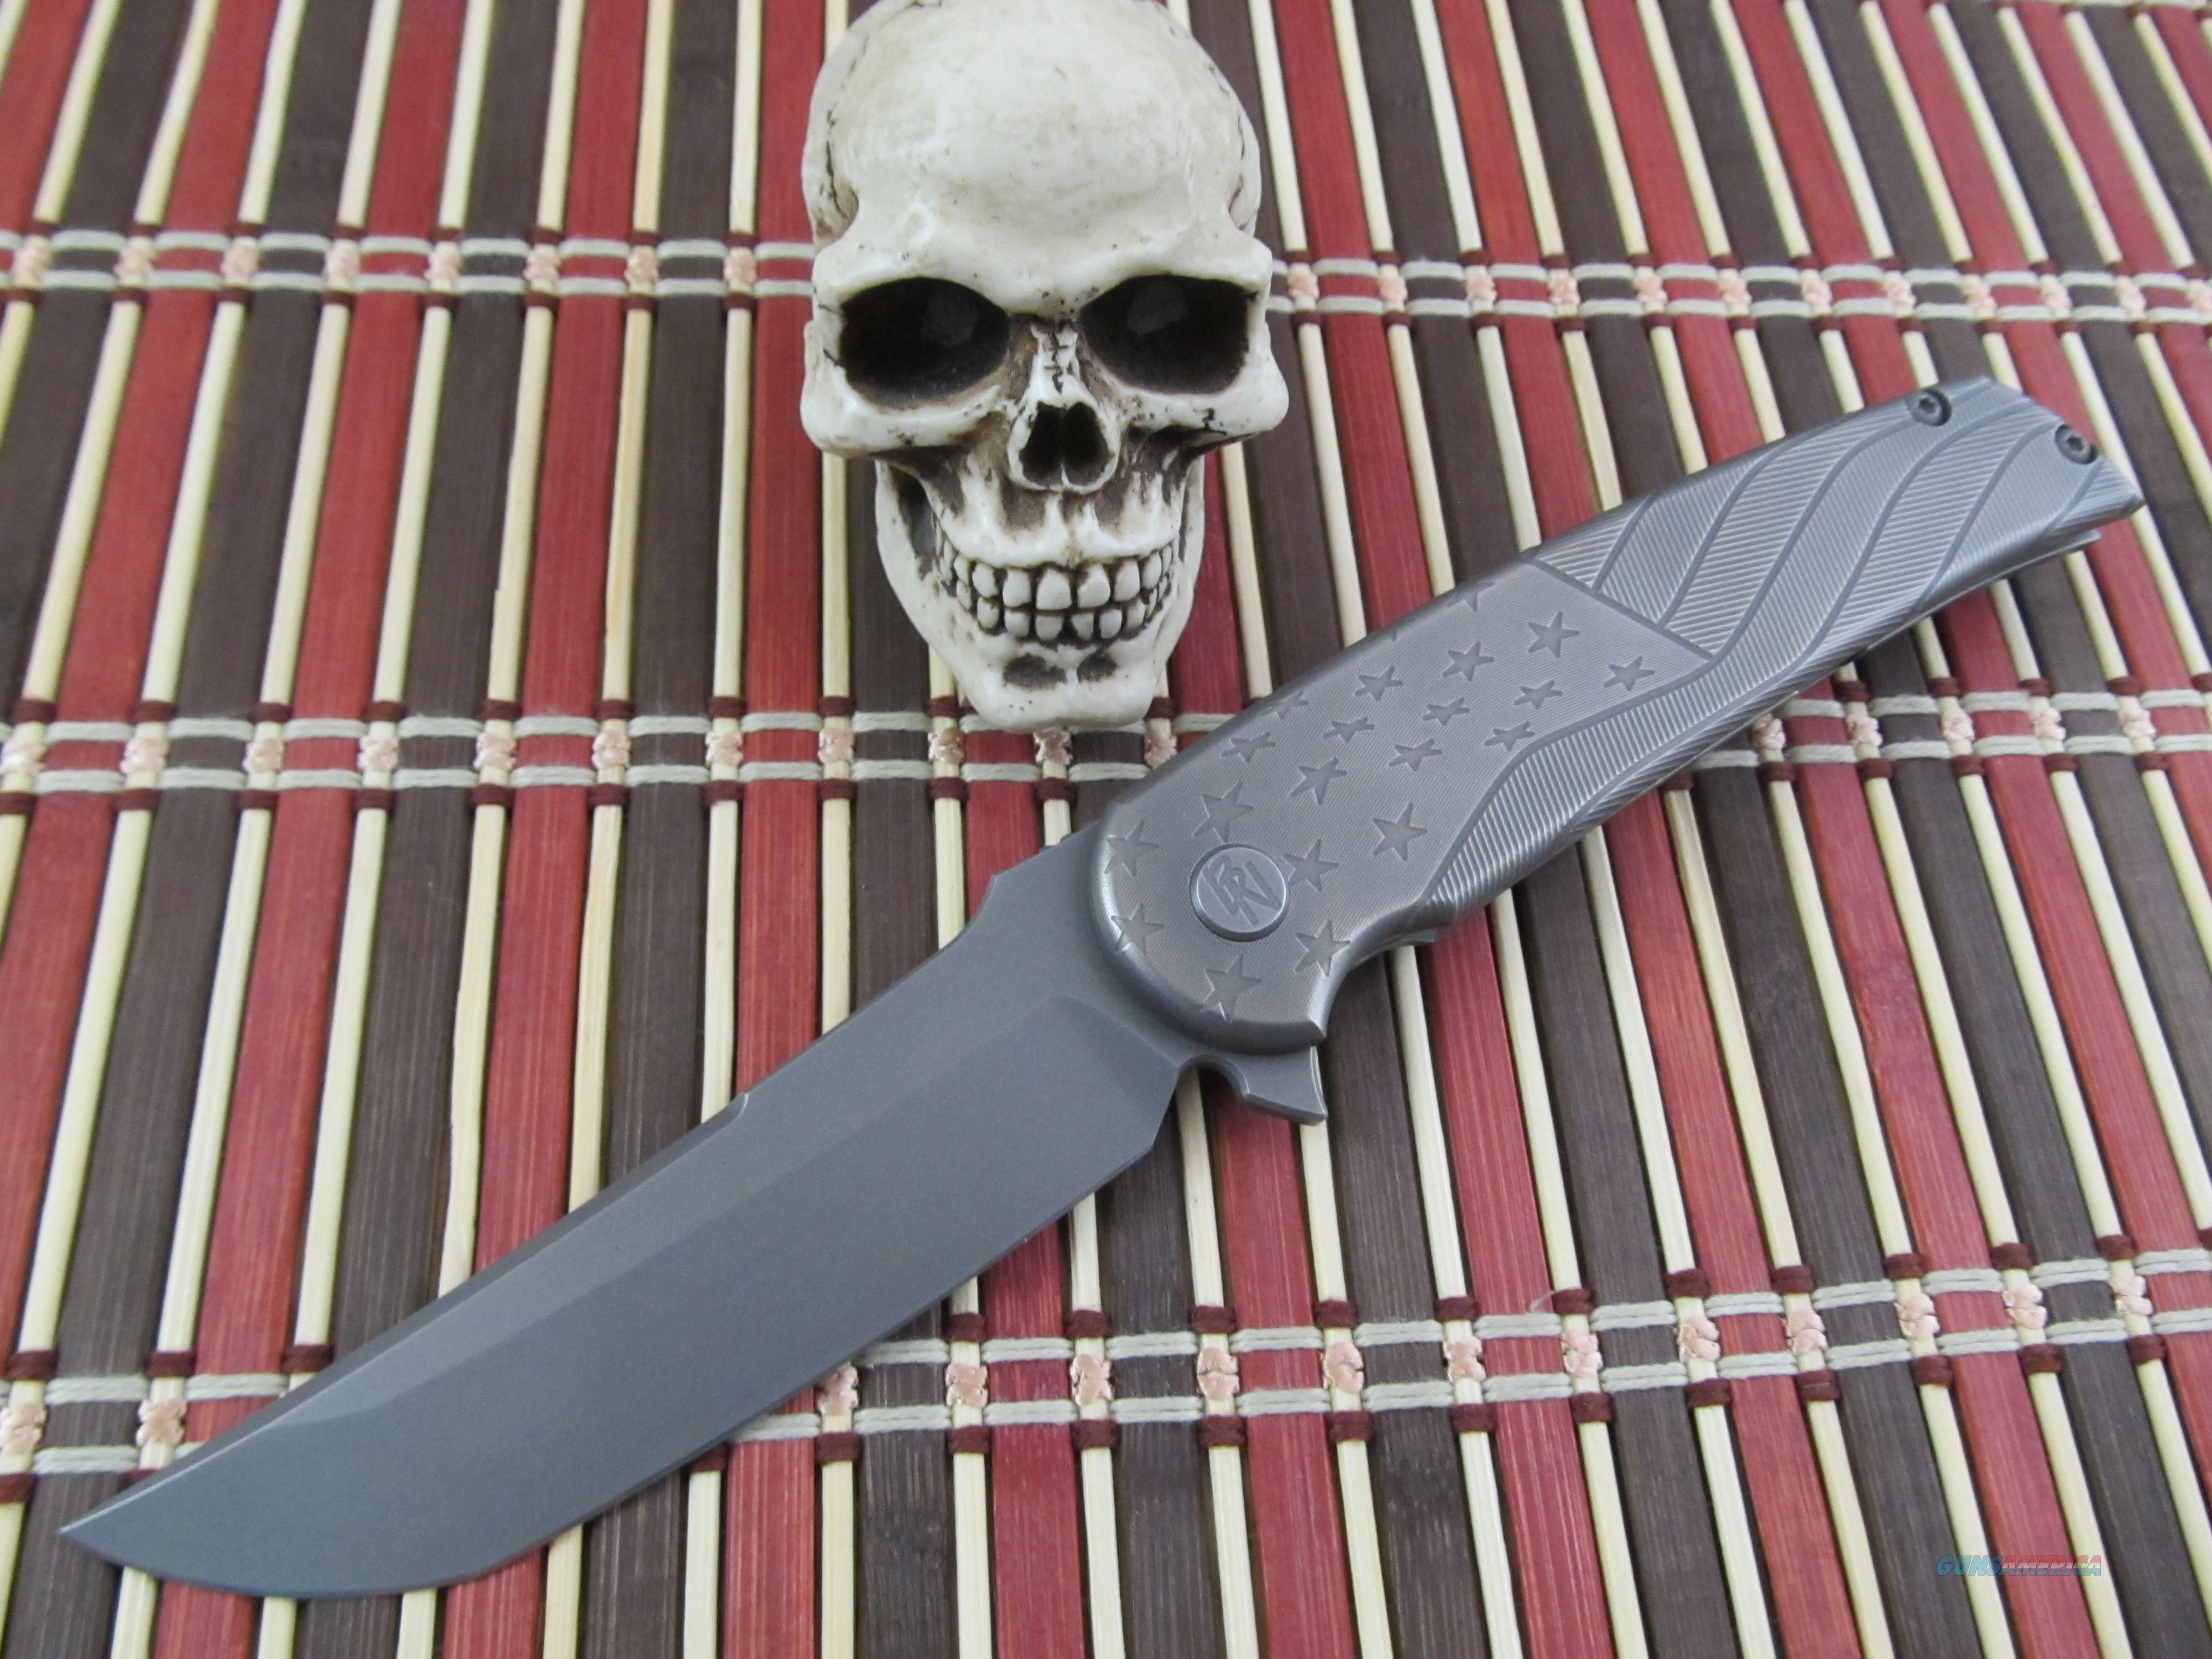 Sharp by Design Knives Brian Nadeau Owner / Maker Prototype Wavy Flag Hurricane   Non-Guns > Knives/Swords > Knives > Folding Blade > Hand Made